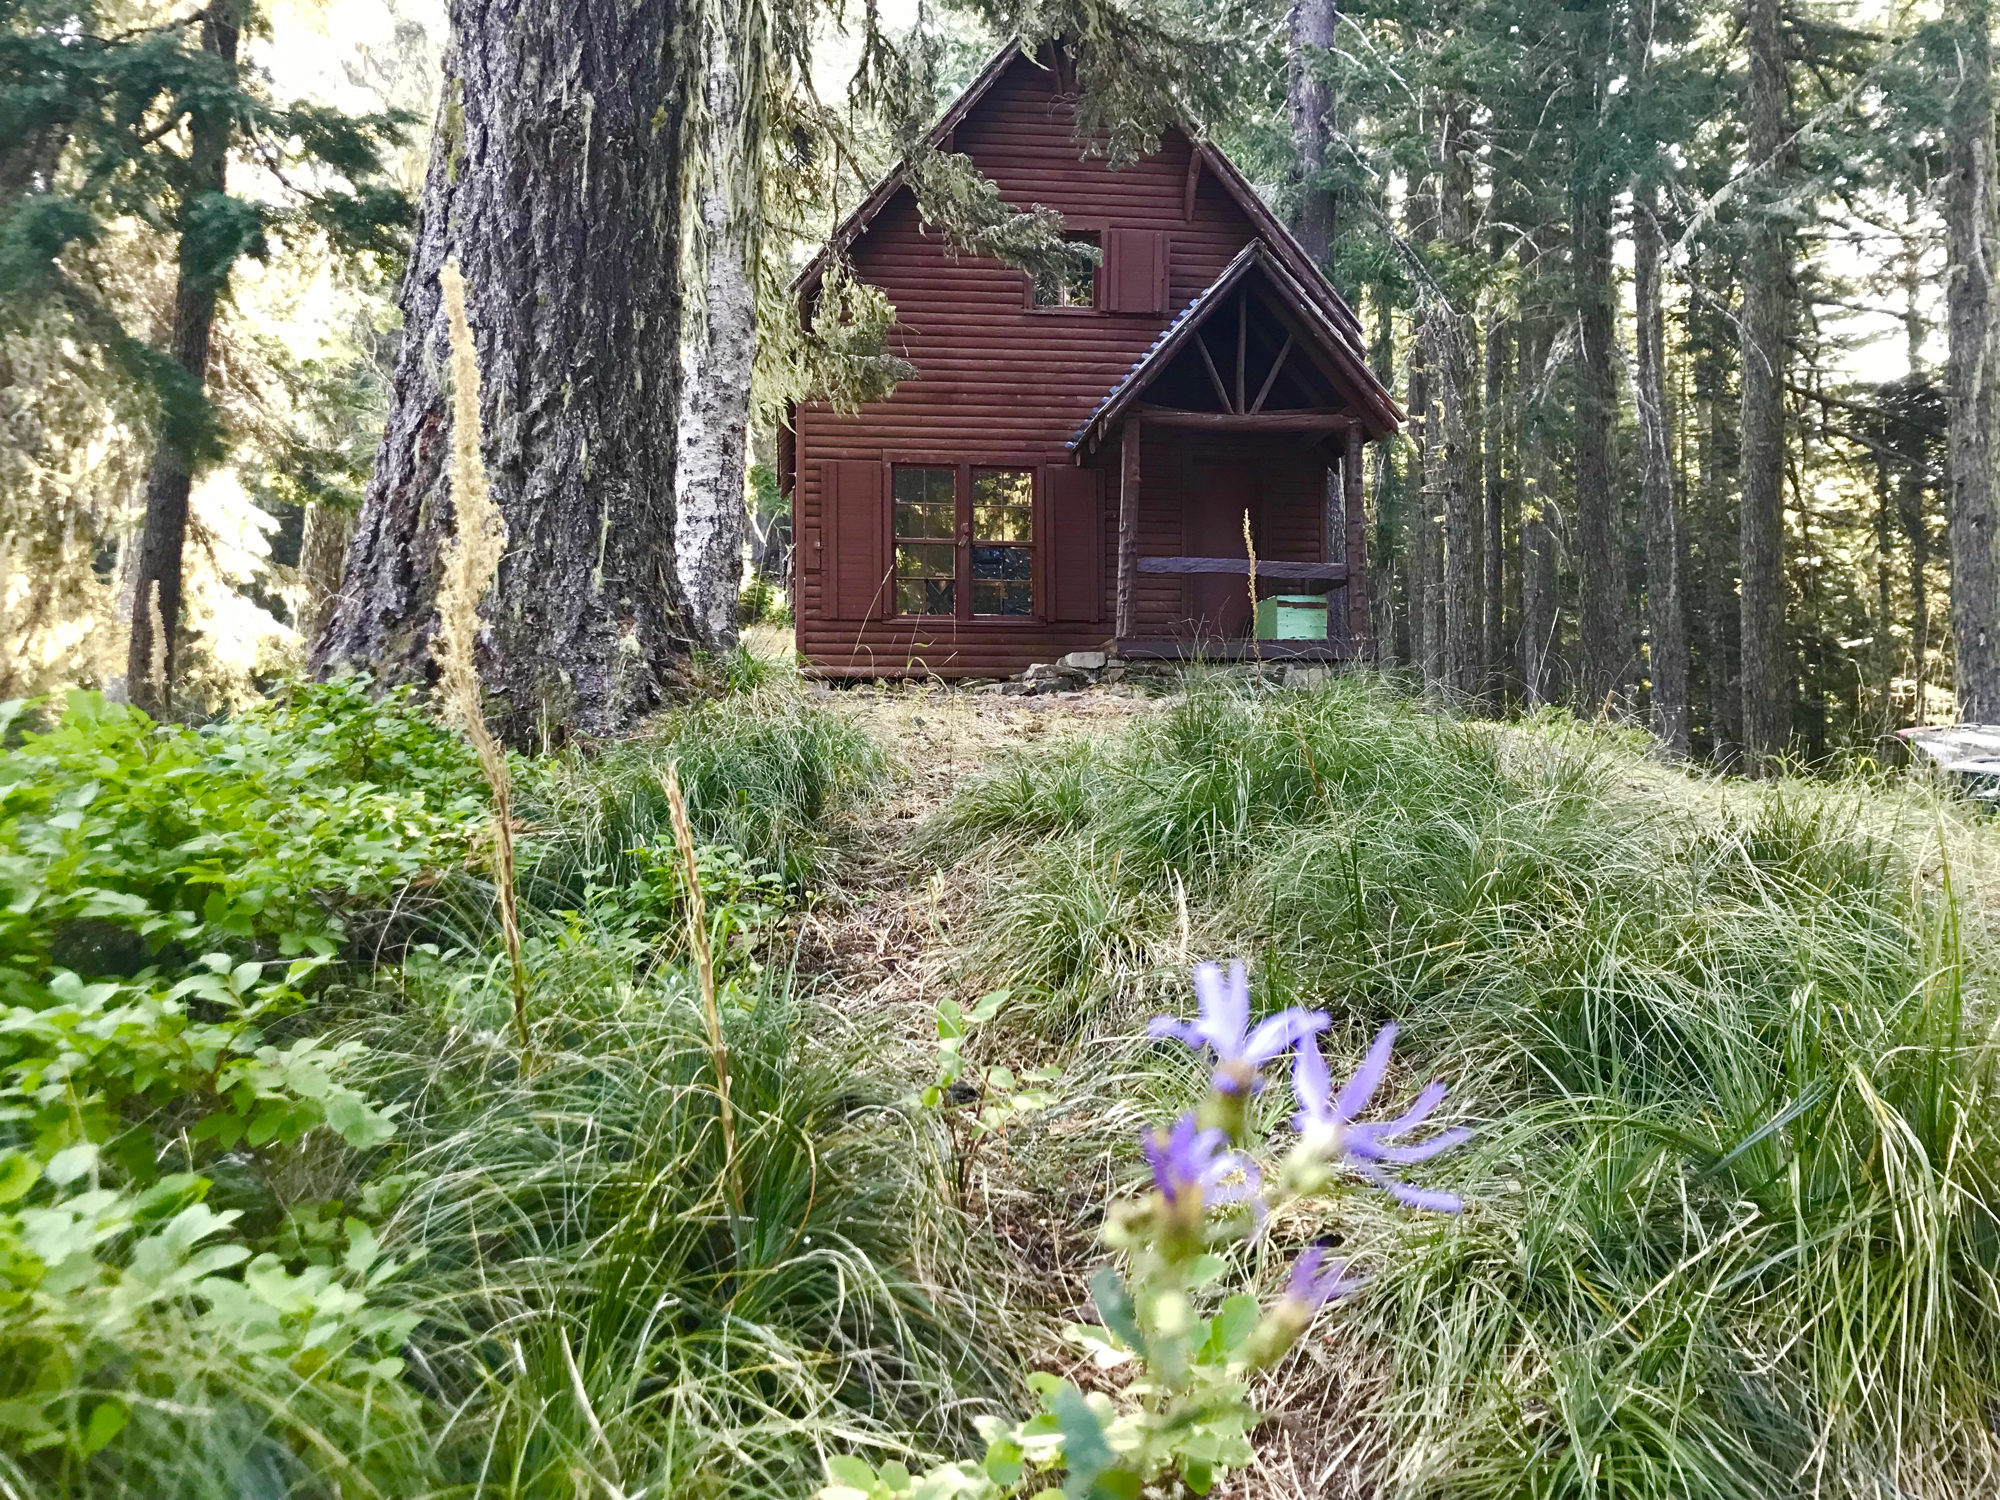 Musick Guard Station - a rental cabin in the Forest Service recreation program